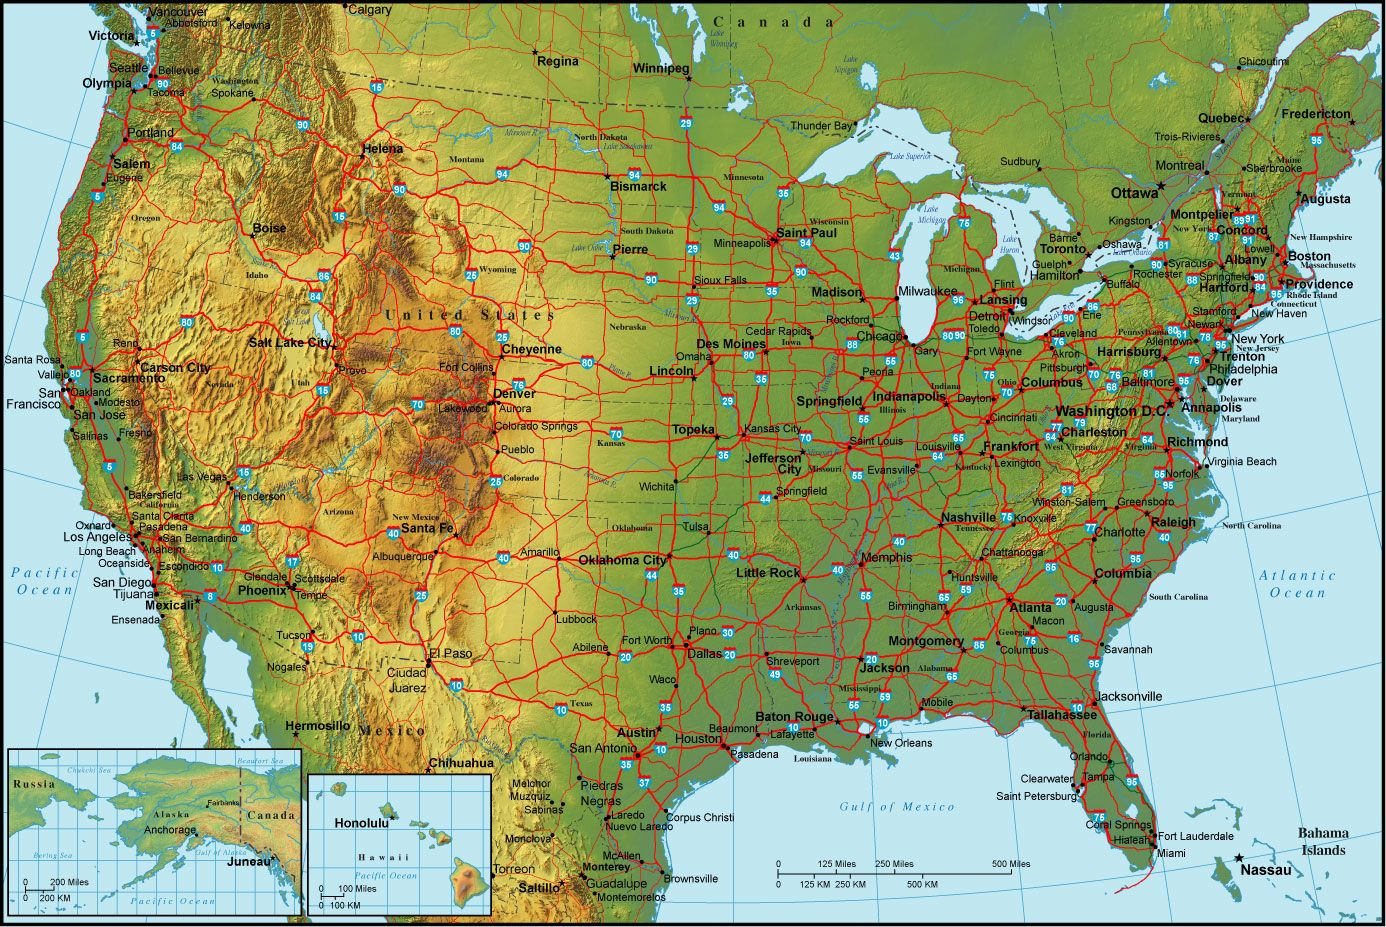 Detailed topographical map of the USA The